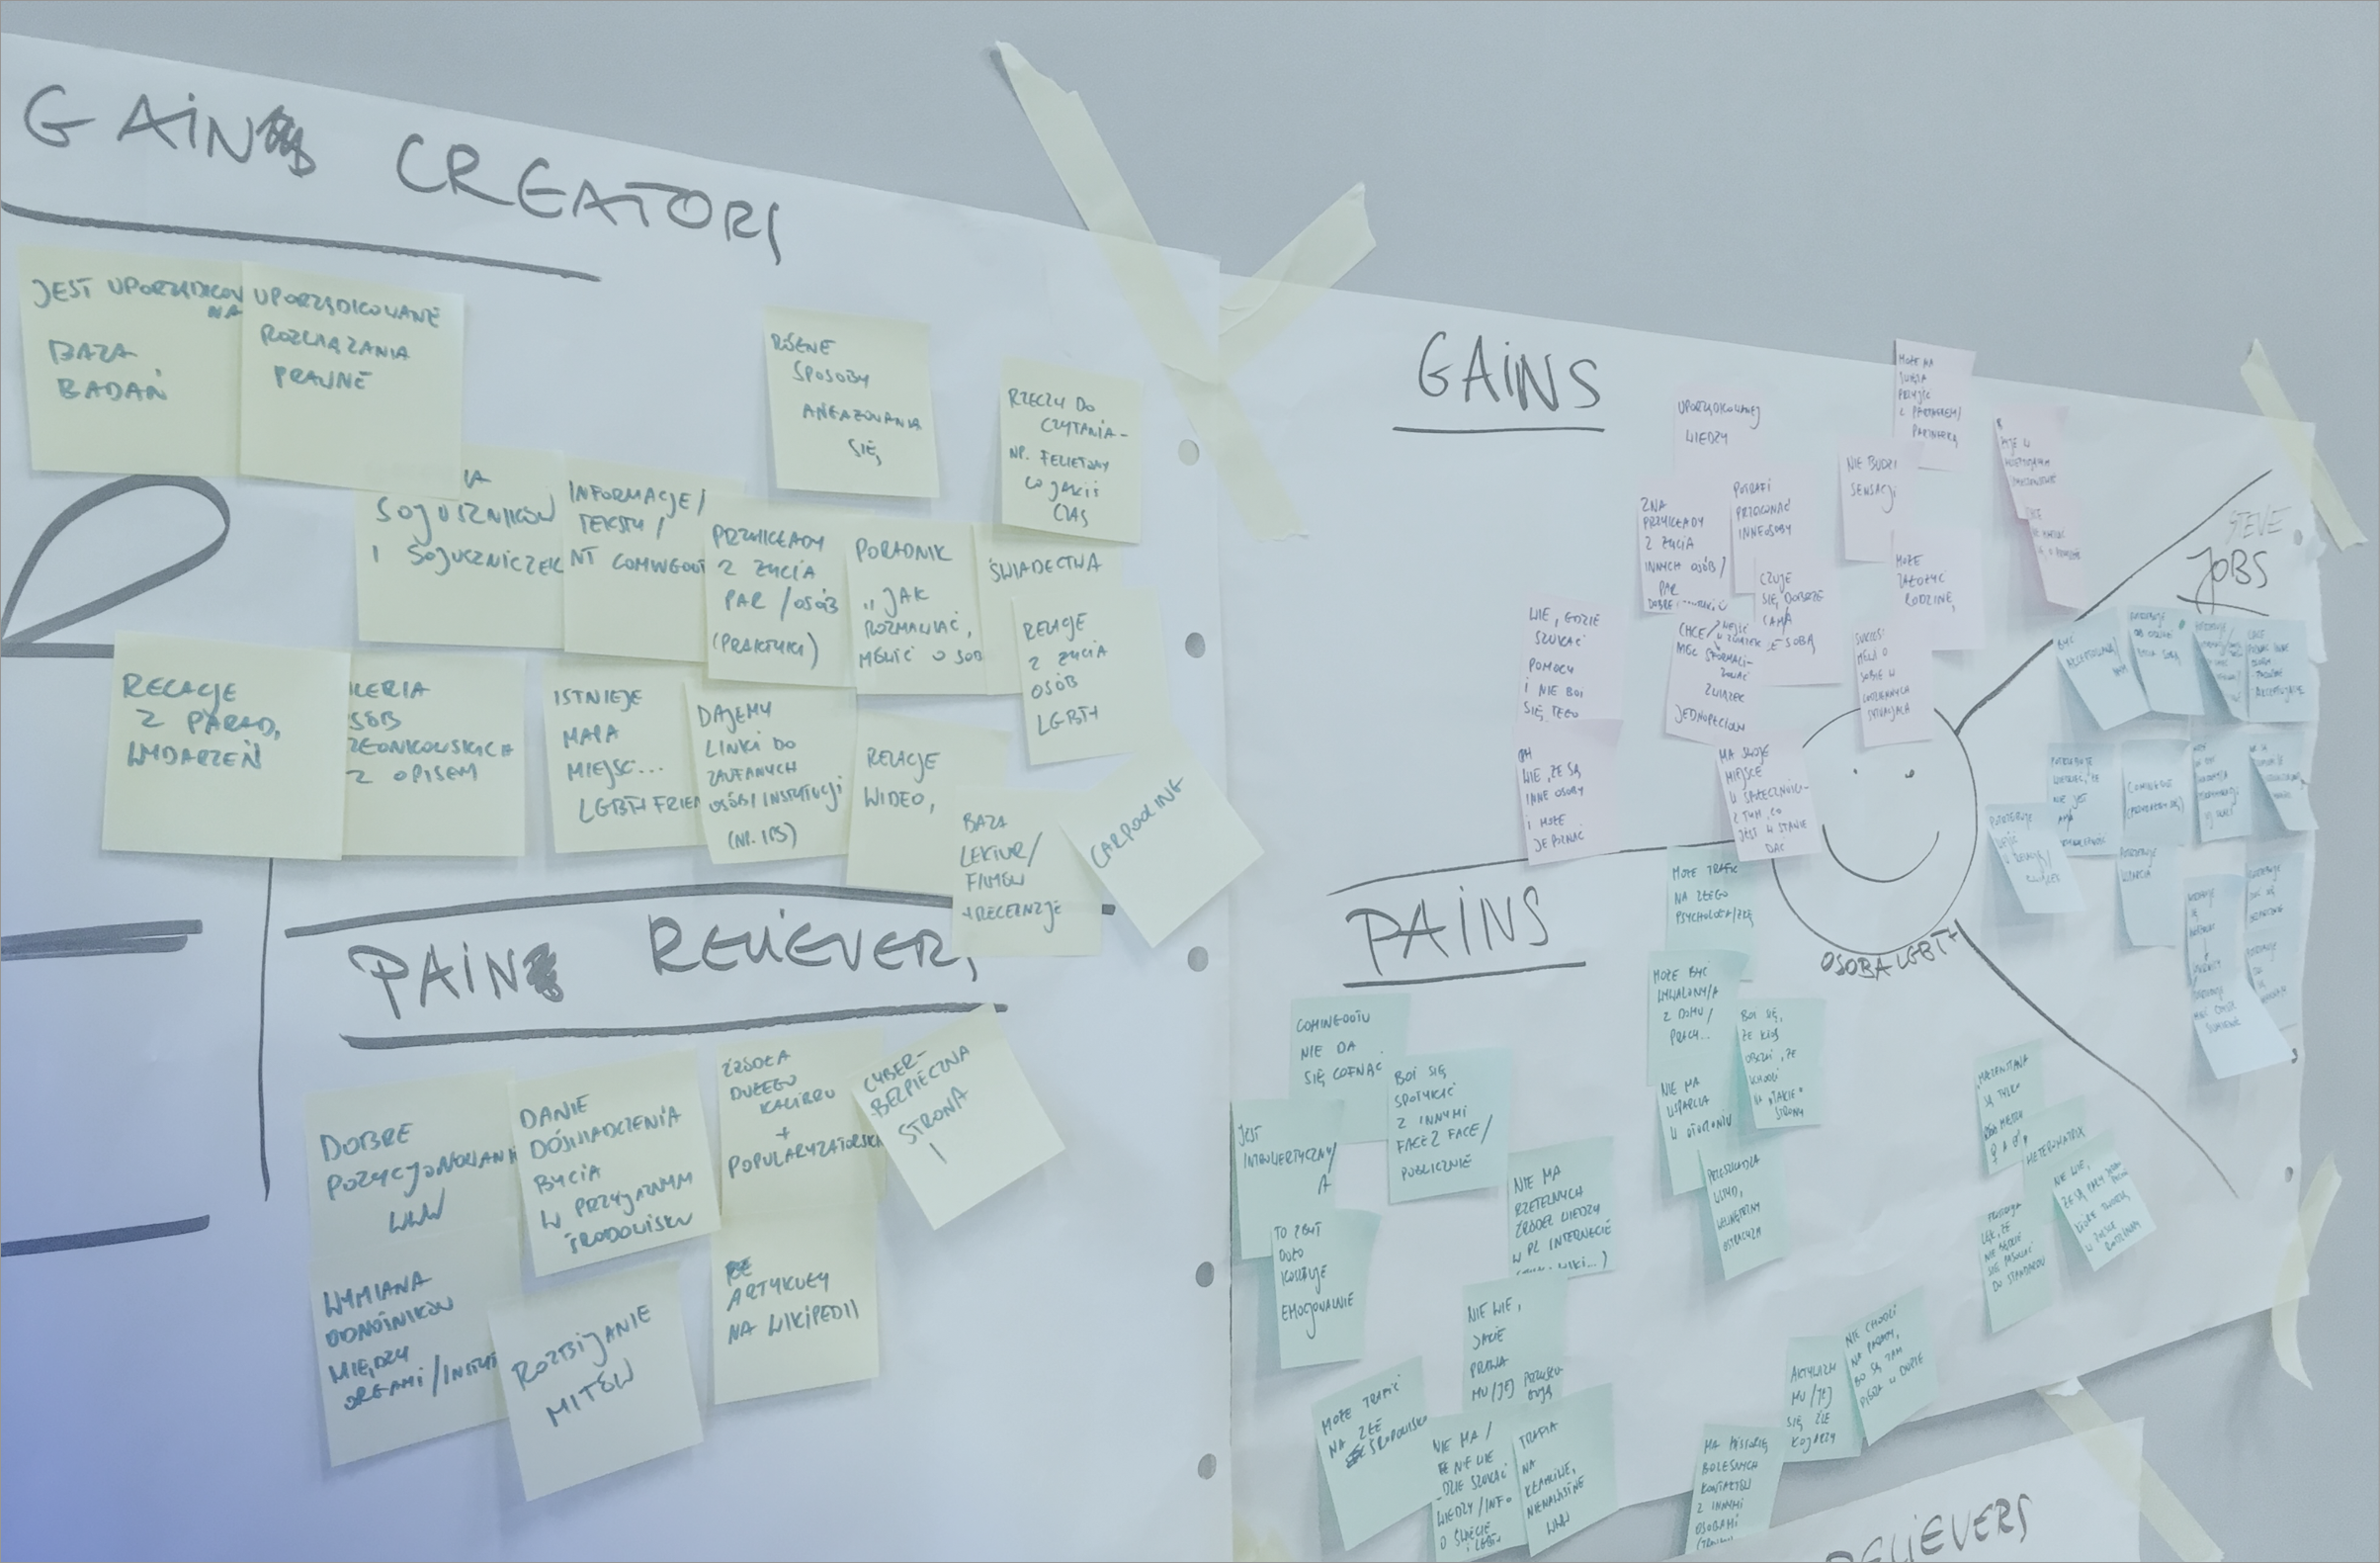 Service Design Sprint - For a governmental client, I was responsible for designing a 5-day long Design Sprint process in order to help them redesign the service provided by their Intelligence Team